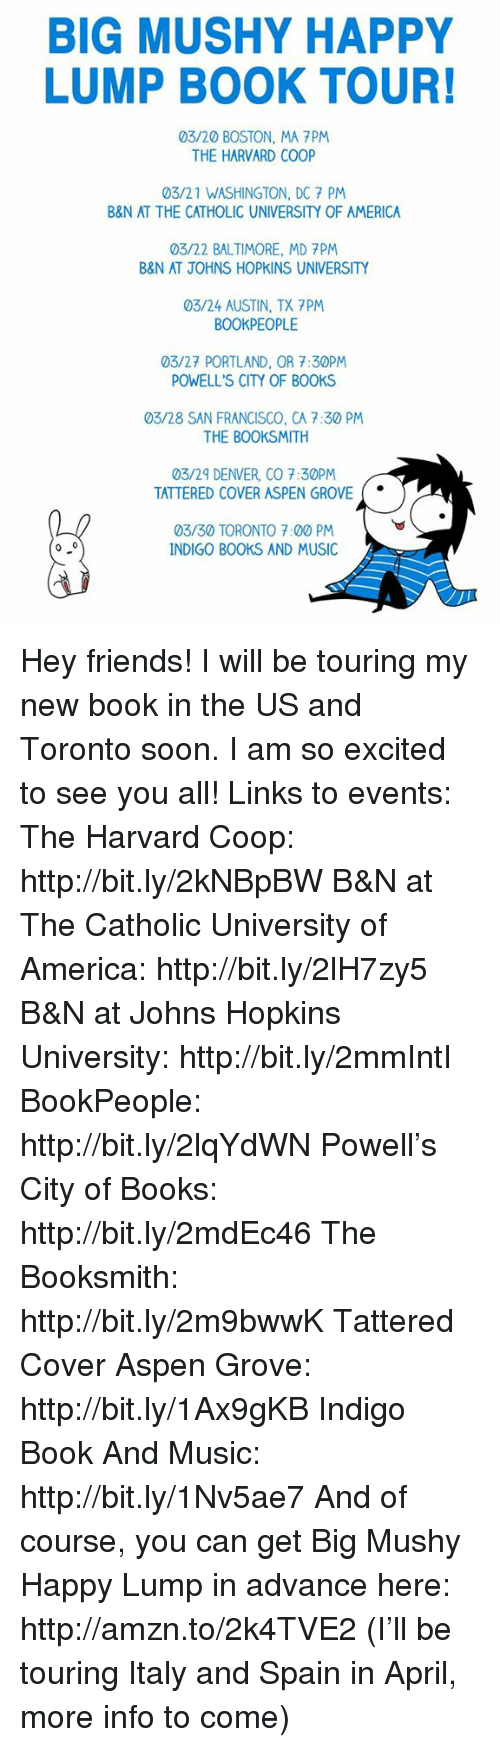 johns hopkins: BIG MUSHY HAPPY  LUMP BOOK TOUR!  03/20 BOSTON, MA PM  THE HARVARD COOP  03/21 WASHINGTON, DC 7 PM  B&N AT THE CATHOLIC UNIVERSITY OF AMERICA  03/22 BALTIMORE, MD 7PM  B&N AT JOHNS HOPKINS UNIVERSITY  03/24 AUSTIN, TX 7PM  BOOKPEOPLE  03/27 PORTLAND, OR 7:30PM  POWELL'S CITY OF BOOKS  03/28 SAN FRANCISCO, CA 7:30 PM  THE BOOKSMITH  03/29 DENVER, CO 7:30PM  TATTERED COVER ASPEN GROVE  03/30 TORONTO 7:00 PM  0 0  INDIGO BOOKS AND MUSIC Hey friends! I will be touring my new book in the US and Toronto soon. I am so excited to see you all!  Links to events:  The Harvard Coop: http://bit.ly/2kNBpBW  B&N at The Catholic University of America: http://bit.ly/2lH7zy5  B&N at Johns Hopkins University: http://bit.ly/2mmIntI  BookPeople: http://bit.ly/2lqYdWN  Powell's City of Books: http://bit.ly/2mdEc46  The Booksmith: http://bit.ly/2m9bwwK  Tattered Cover Aspen Grove: http://bit.ly/1Ax9gKB  Indigo Book And Music: http://bit.ly/1Nv5ae7  And of course, you can get Big Mushy Happy Lump in advance here: http://amzn.to/2k4TVE2  (I'll be touring Italy and Spain in April, more info to come)